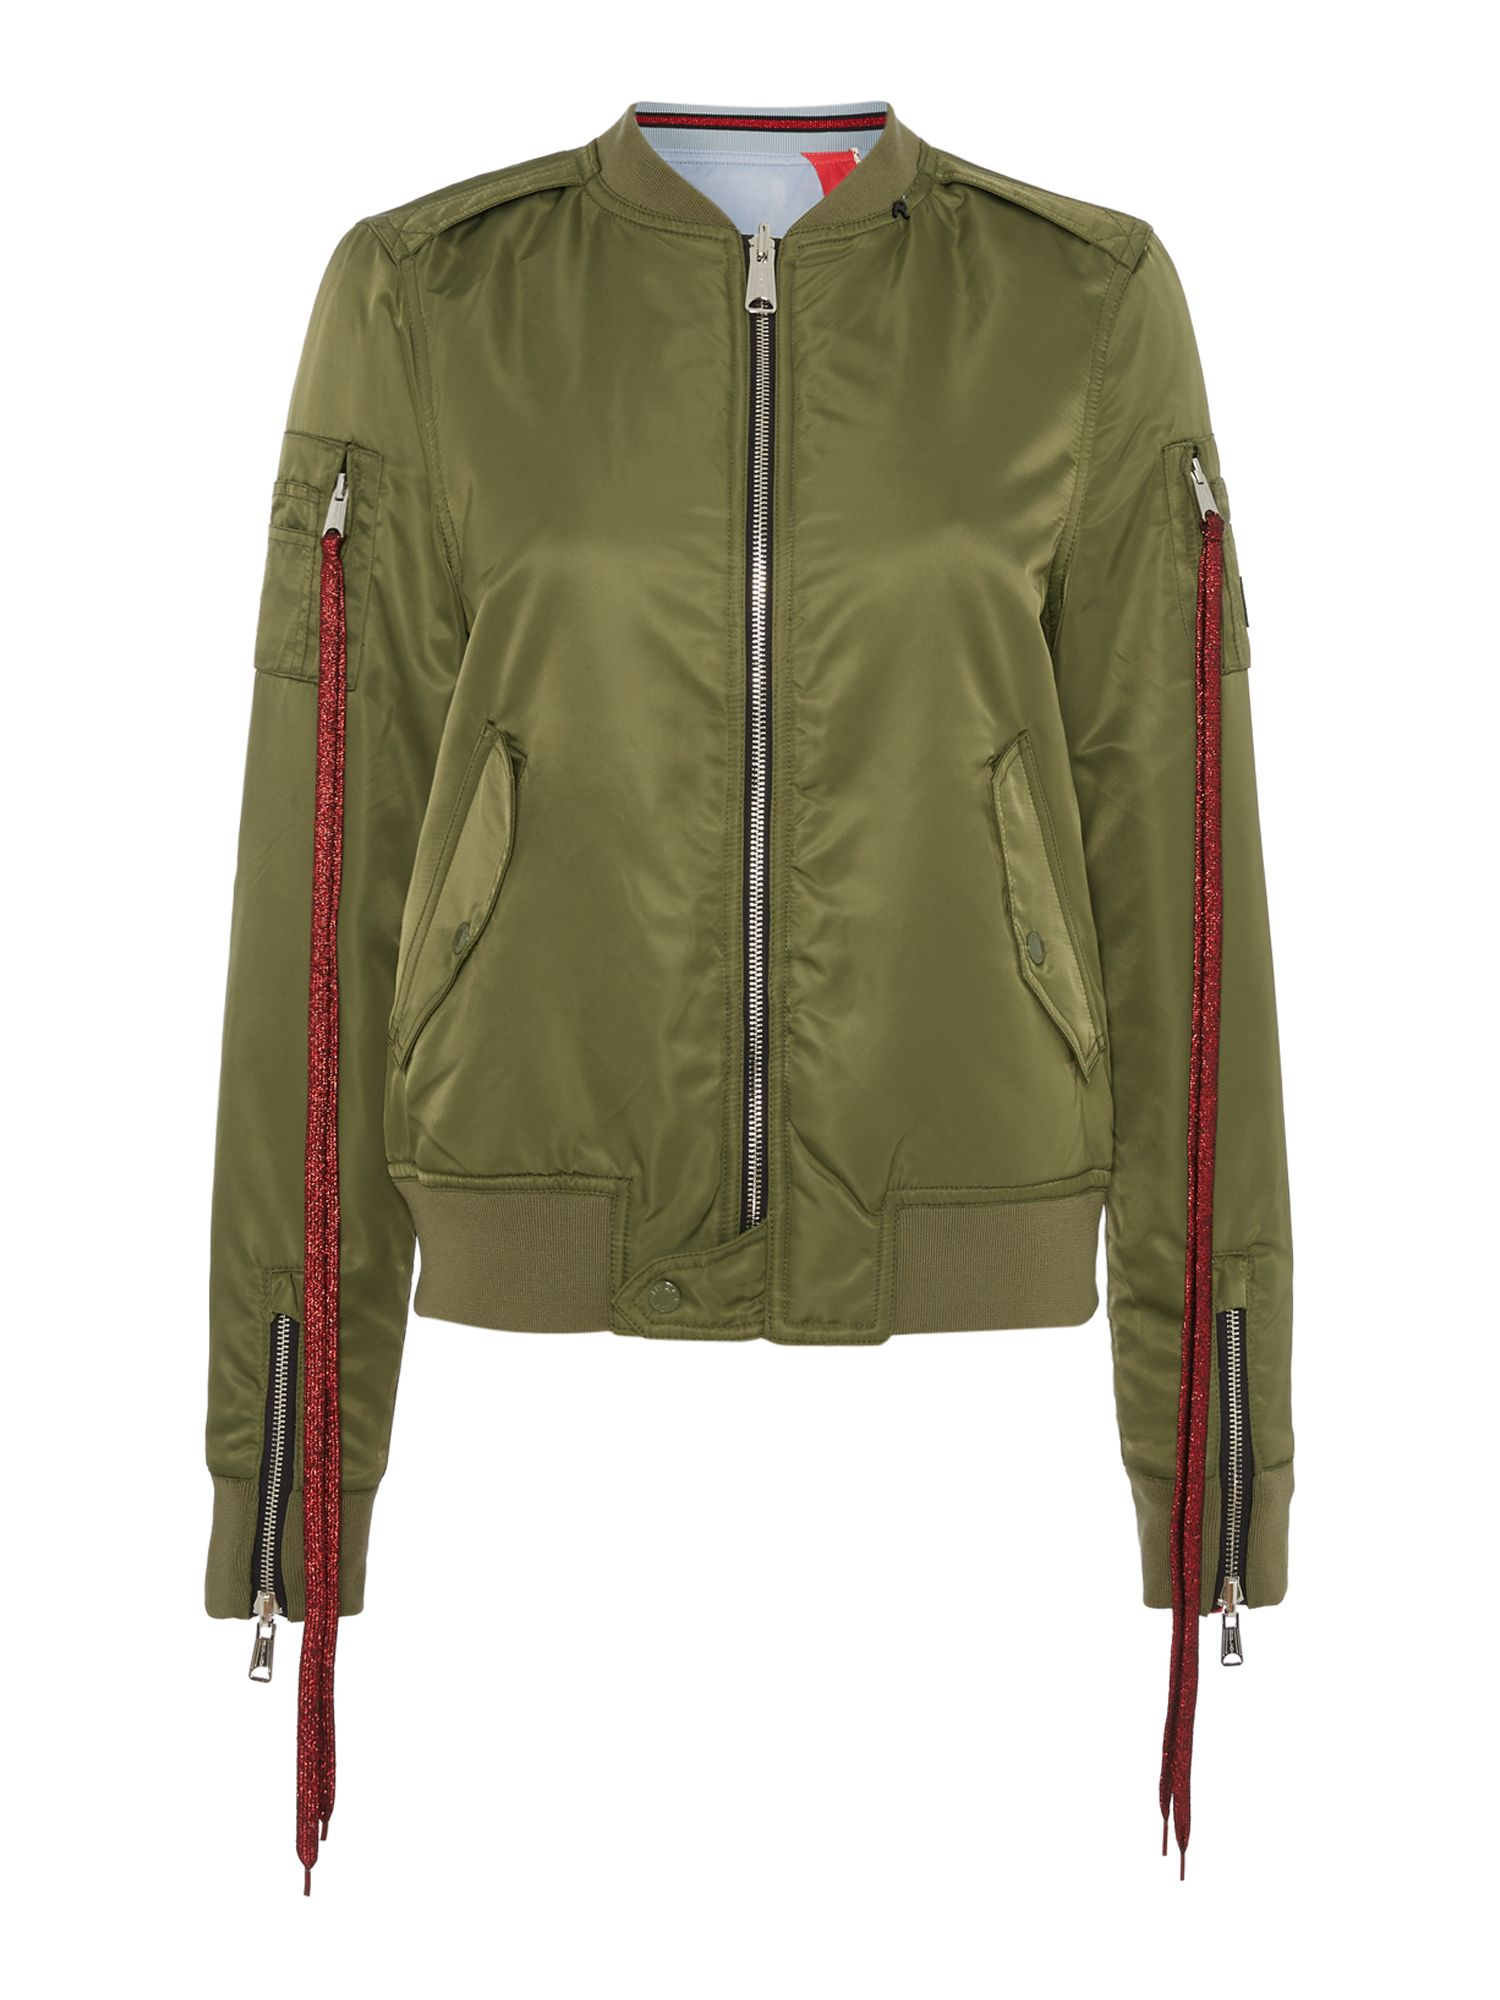 Replay Reversible Satin Bomber Jacket With Patches, Sage Green